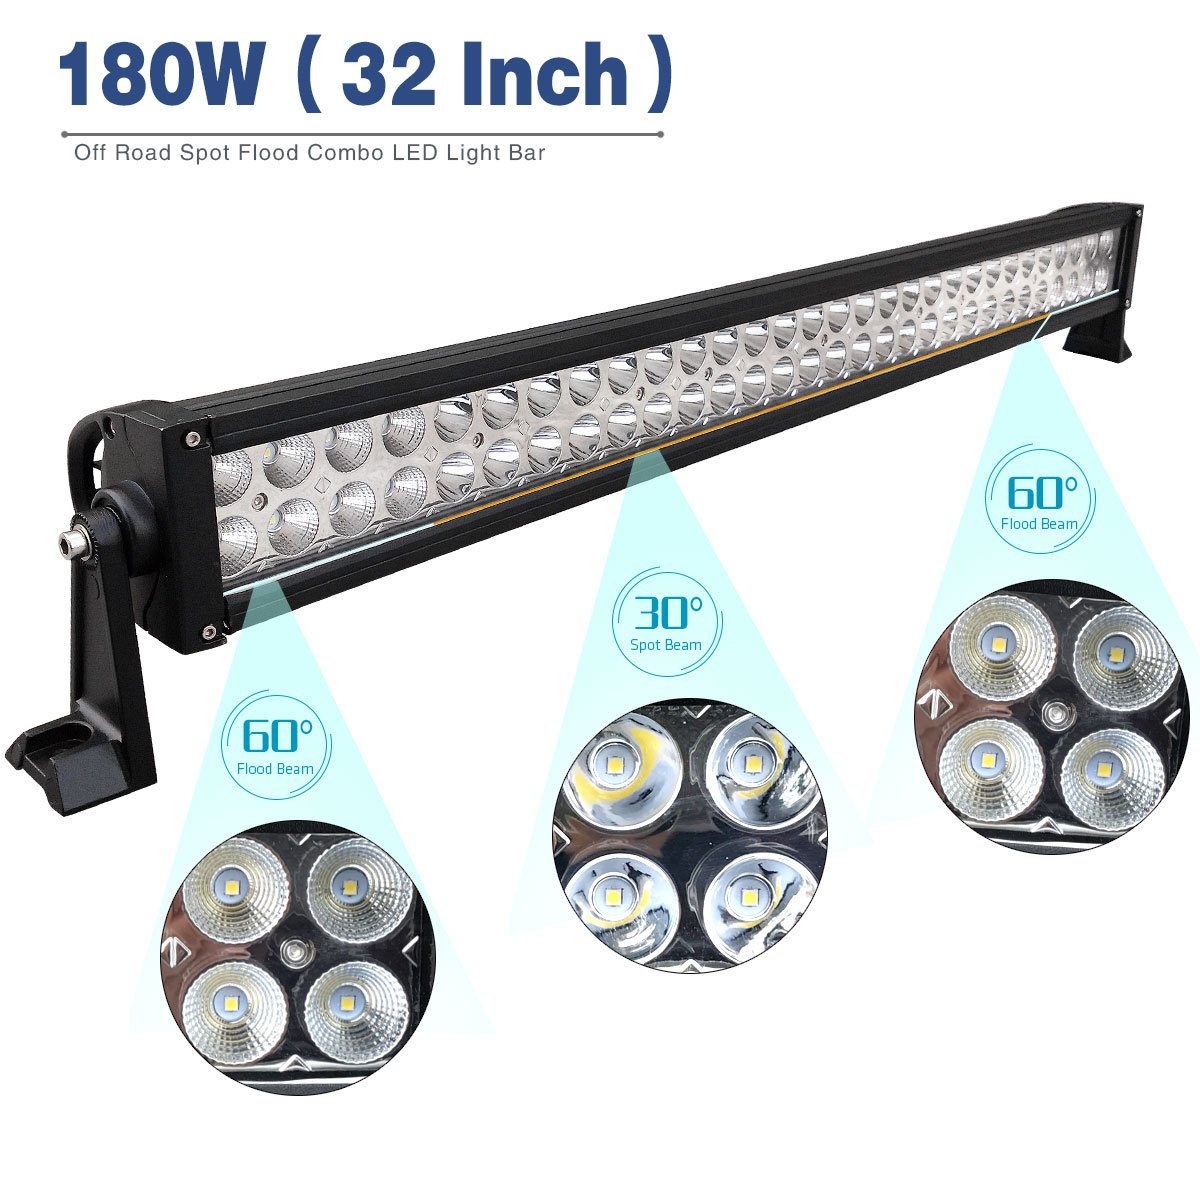 Amazon.com: YITAMOTOR 32 Inch LED Light Bar for Offroad Jeep Truck ...